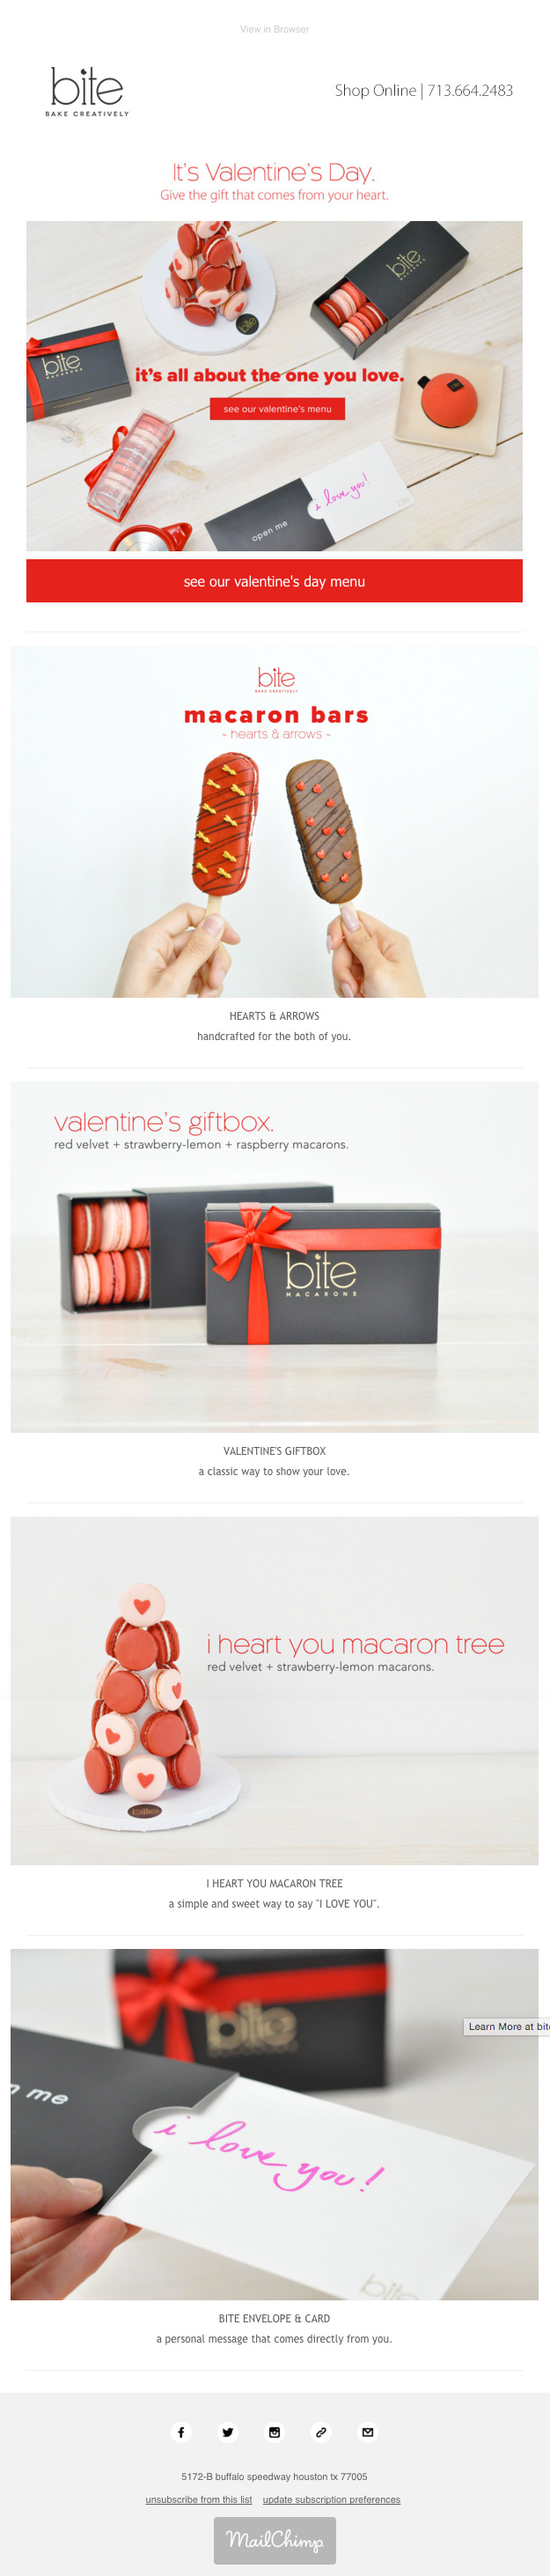 bite-newsletter